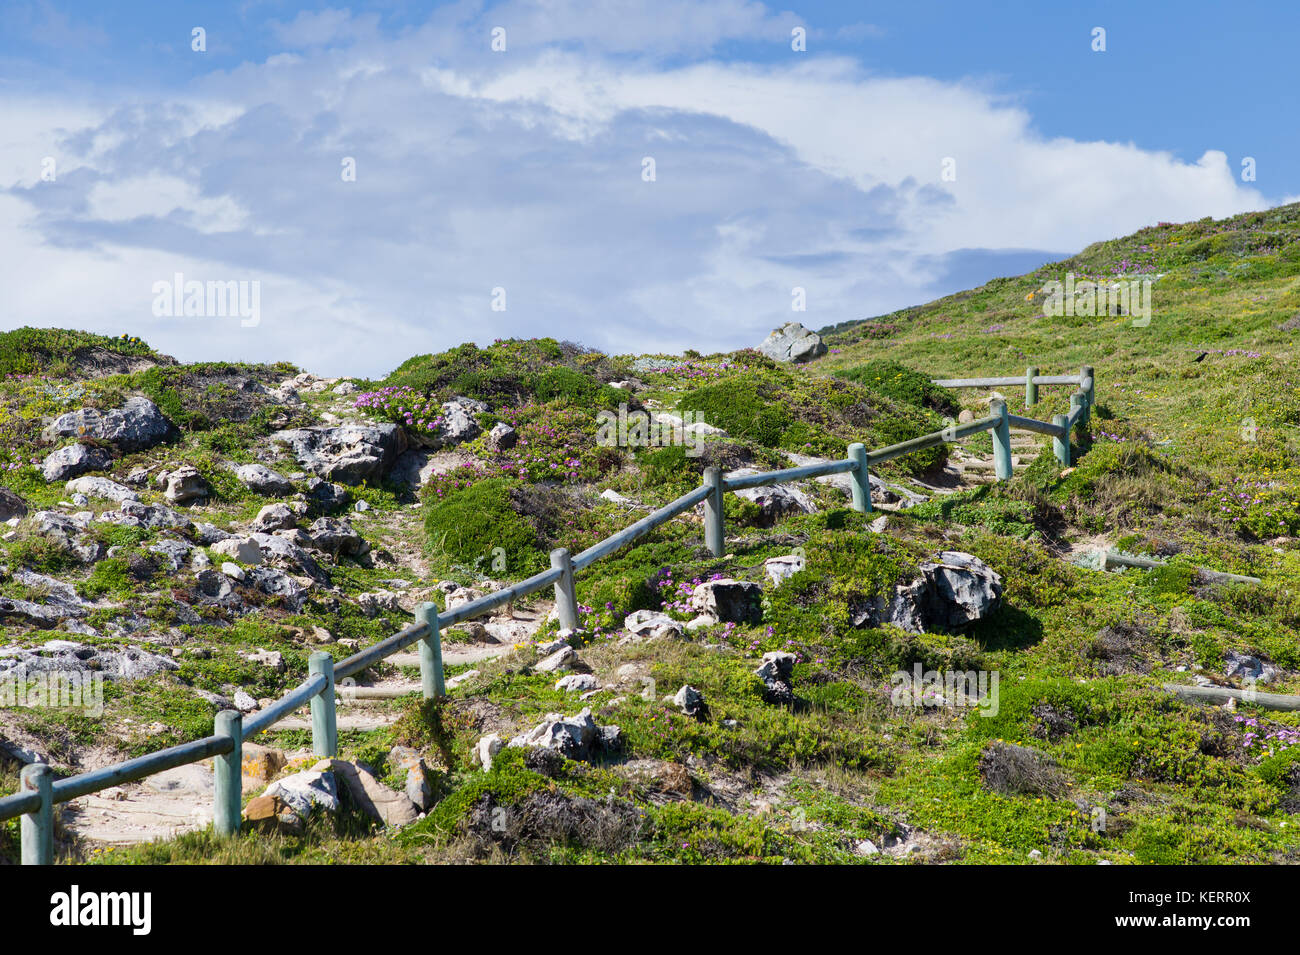 Cape Point is part of Table Mountain National Park and offers stunning views and an opportunity to hike or drive - Stock Image